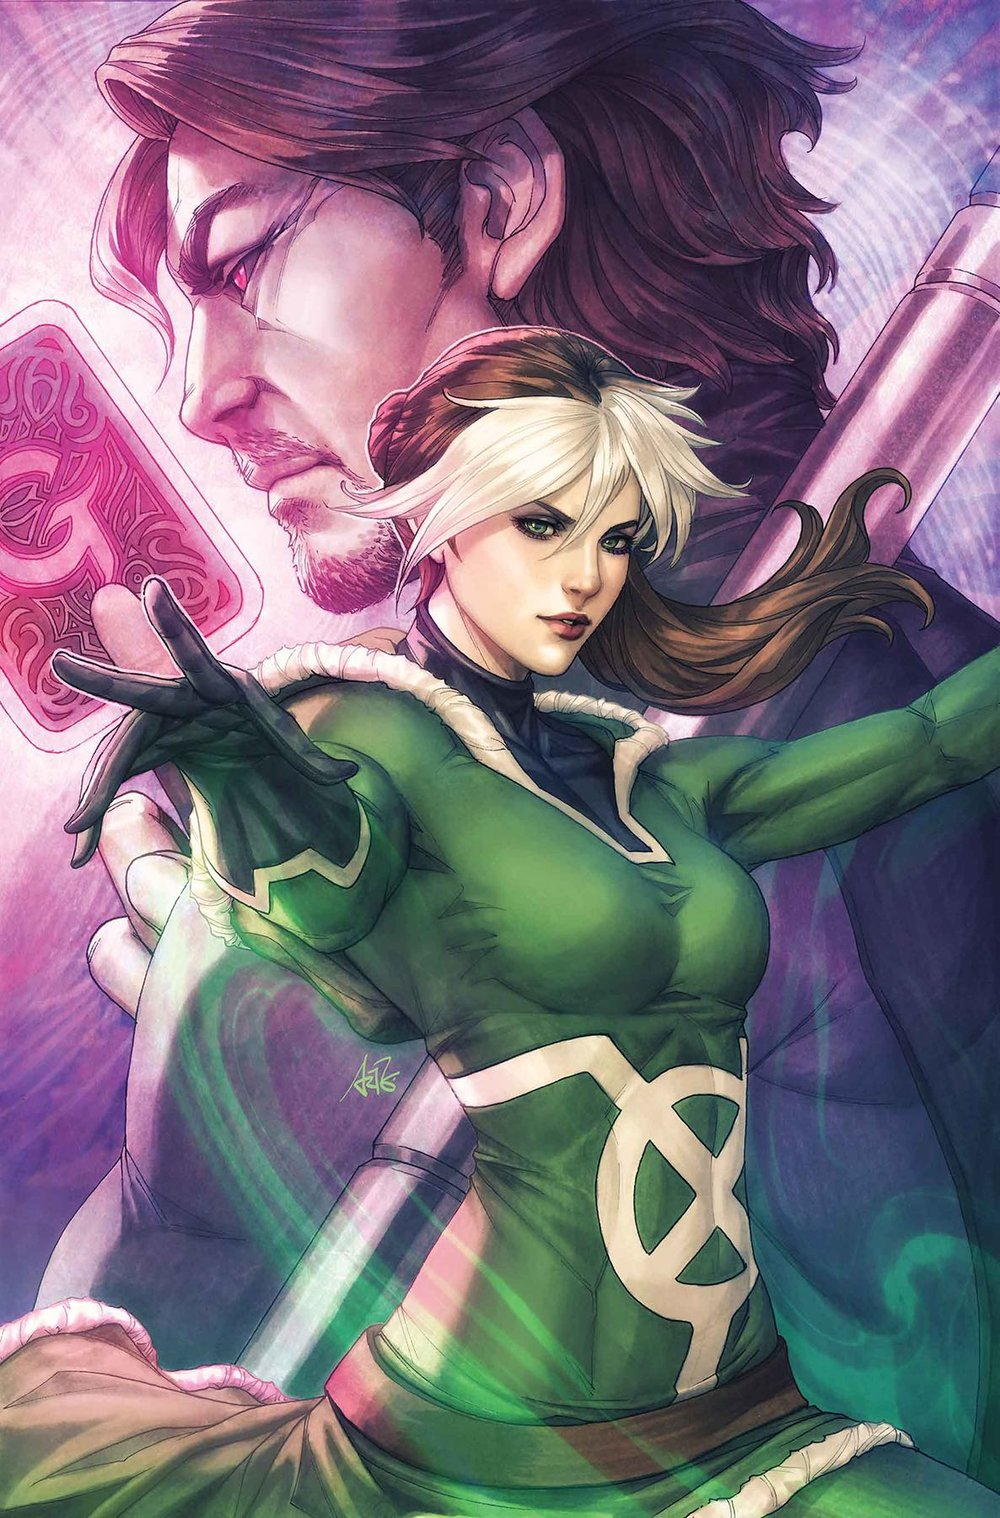 Episode 1 Variant of the Week! - (Marvel) Astonishing X-men #1 (Artgerm Cover)Cover by Stanley LauWritten by Charle SouleIllustrated by Jim CheungDid the Content Match the Drapes? - UNR